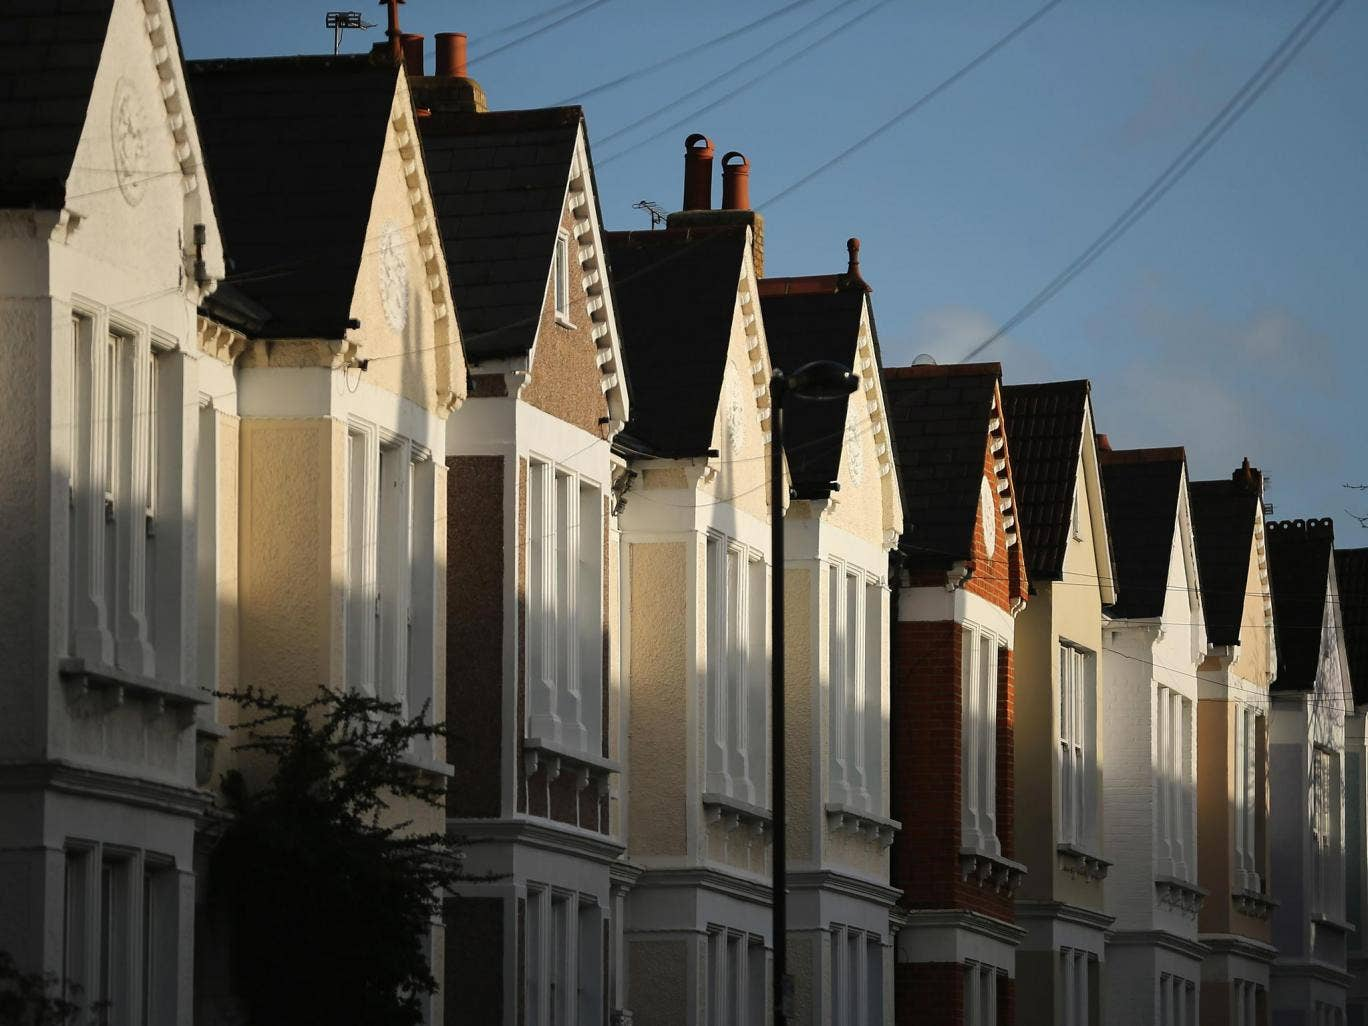 The gap between wages and property prices continues to widen